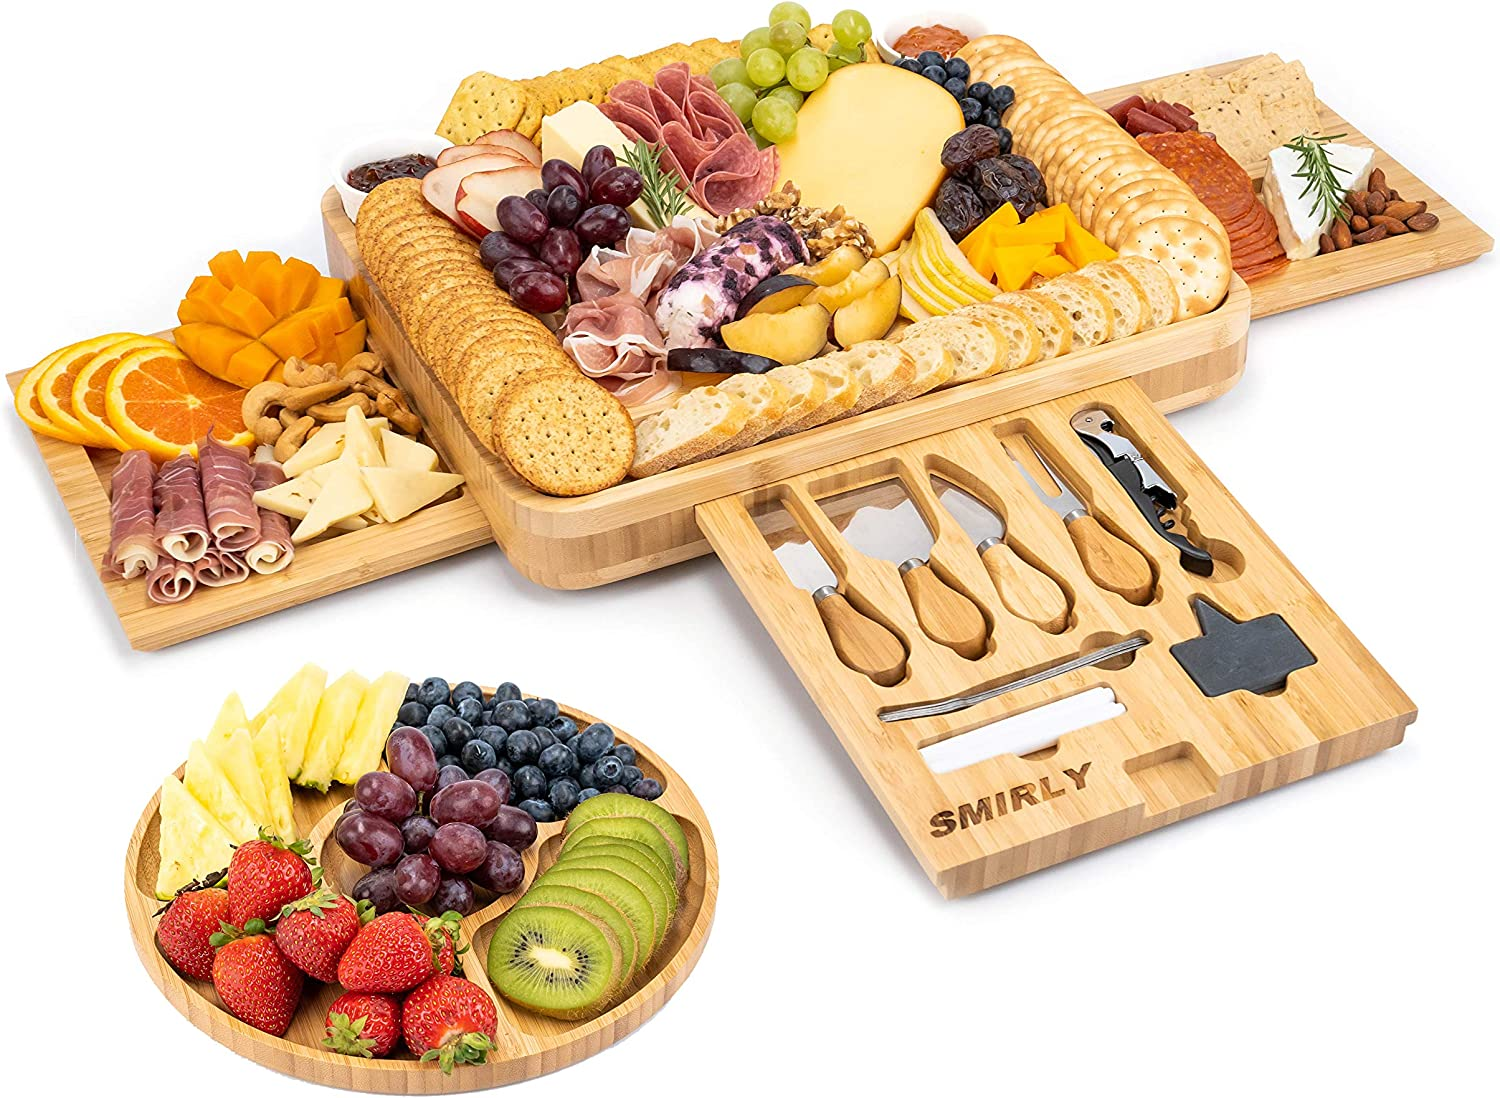 SMIRLY Cheese Board and Knife Regular discount Fort Worth Mall Set: 16 Charcut 2 Inch Wood 13 x